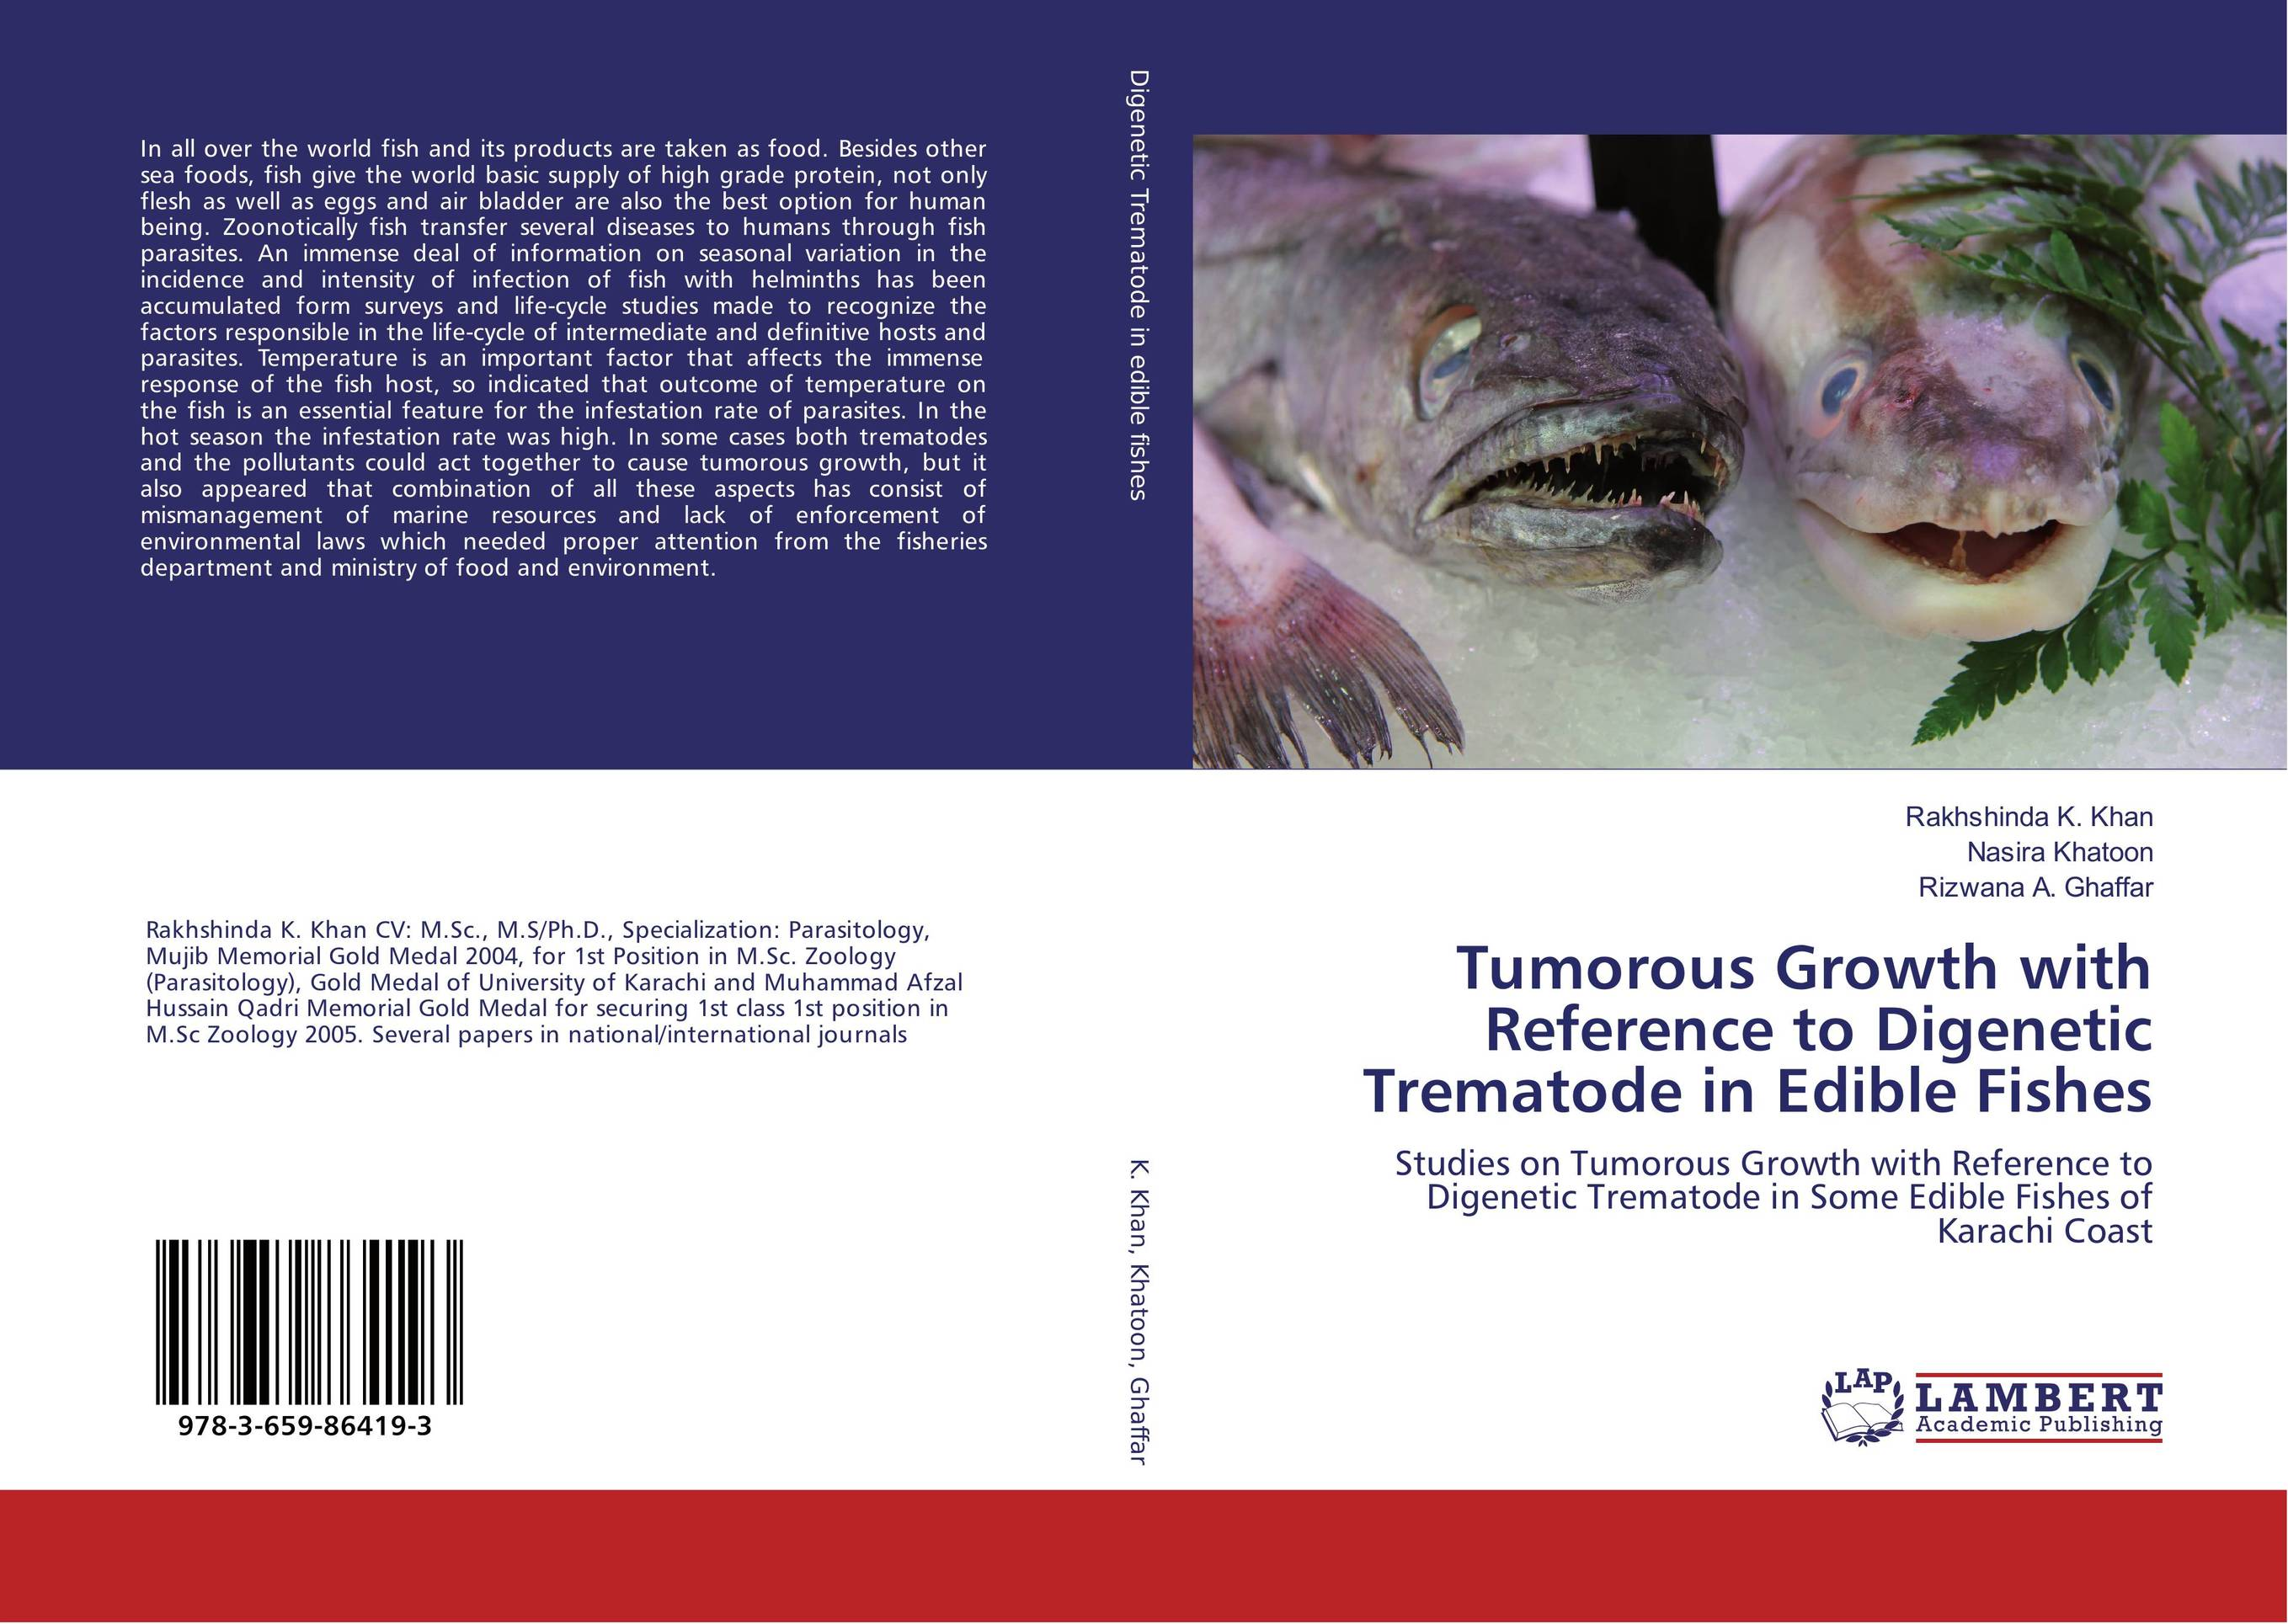 Tumorous Growth with Reference to Digenetic Trematode in Edible Fishes 1000g 98% fish collagen powder high purity for functional food